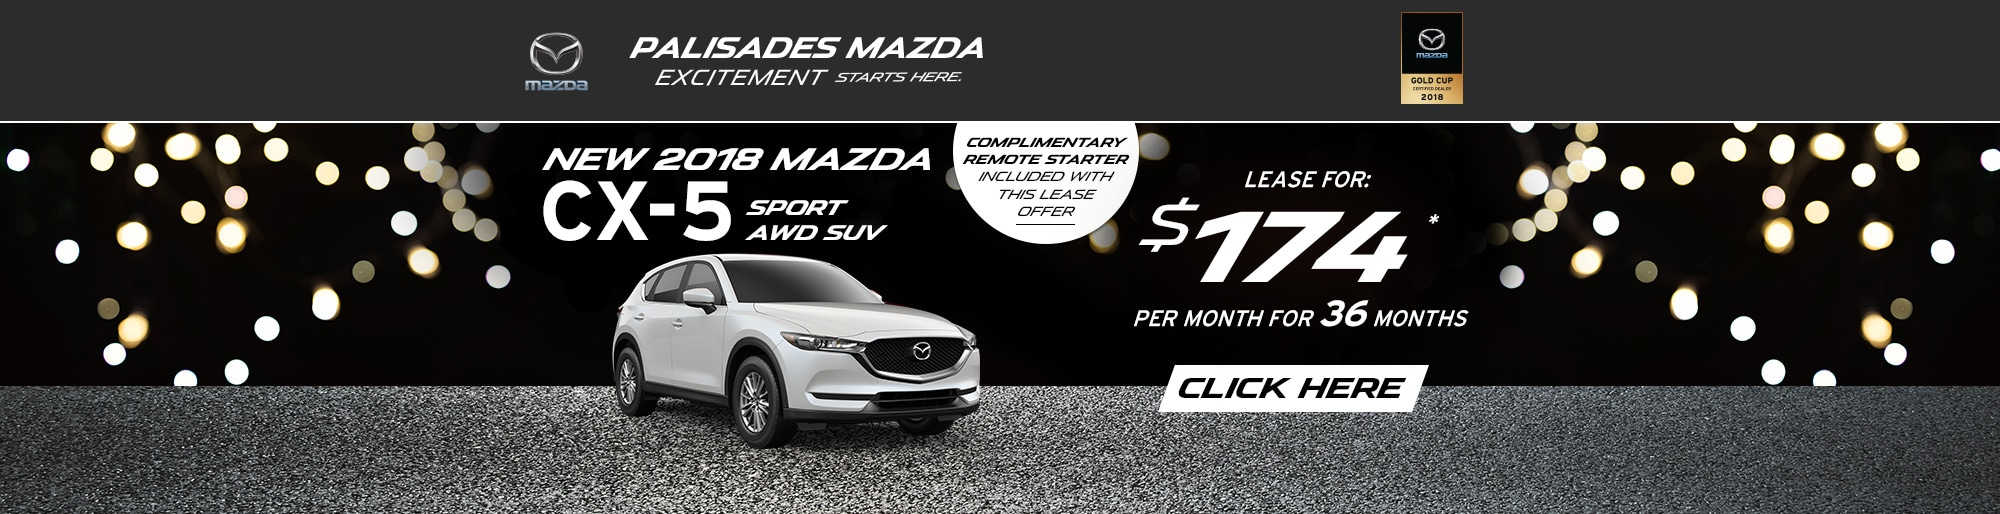 Mazda CX-5 lease deal image